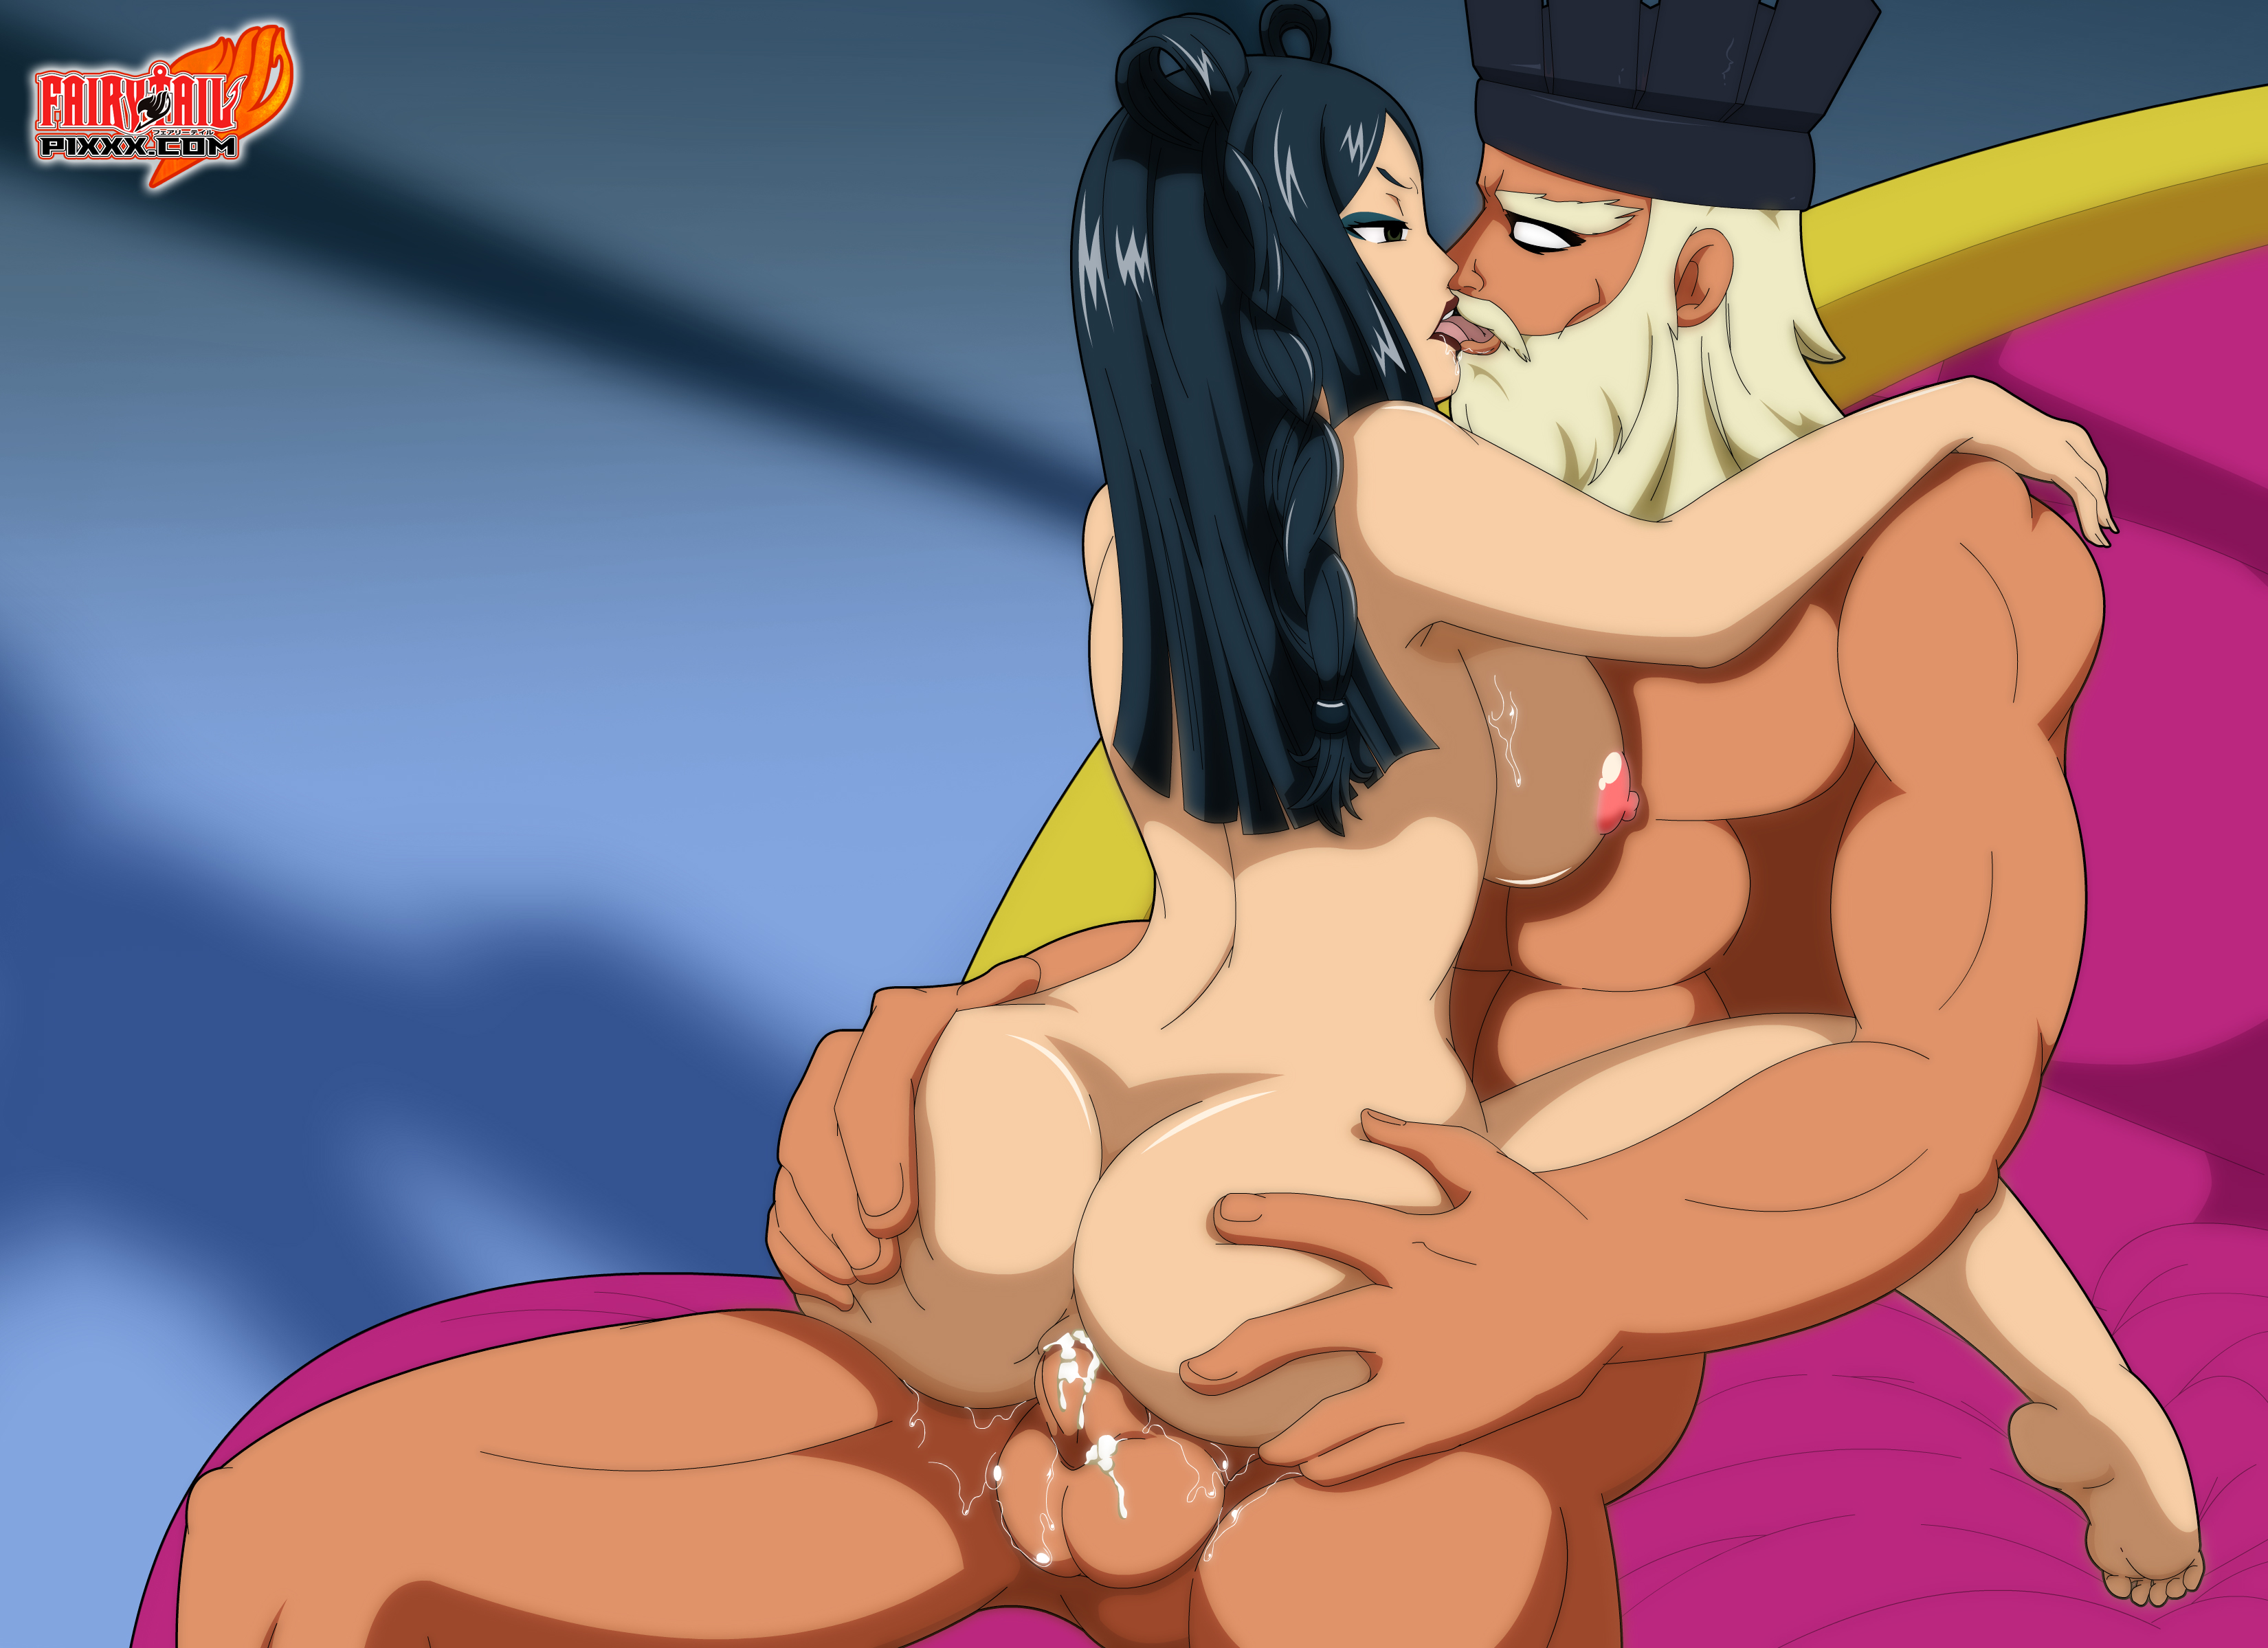 Fairy tail sex porn image cartoon gallery